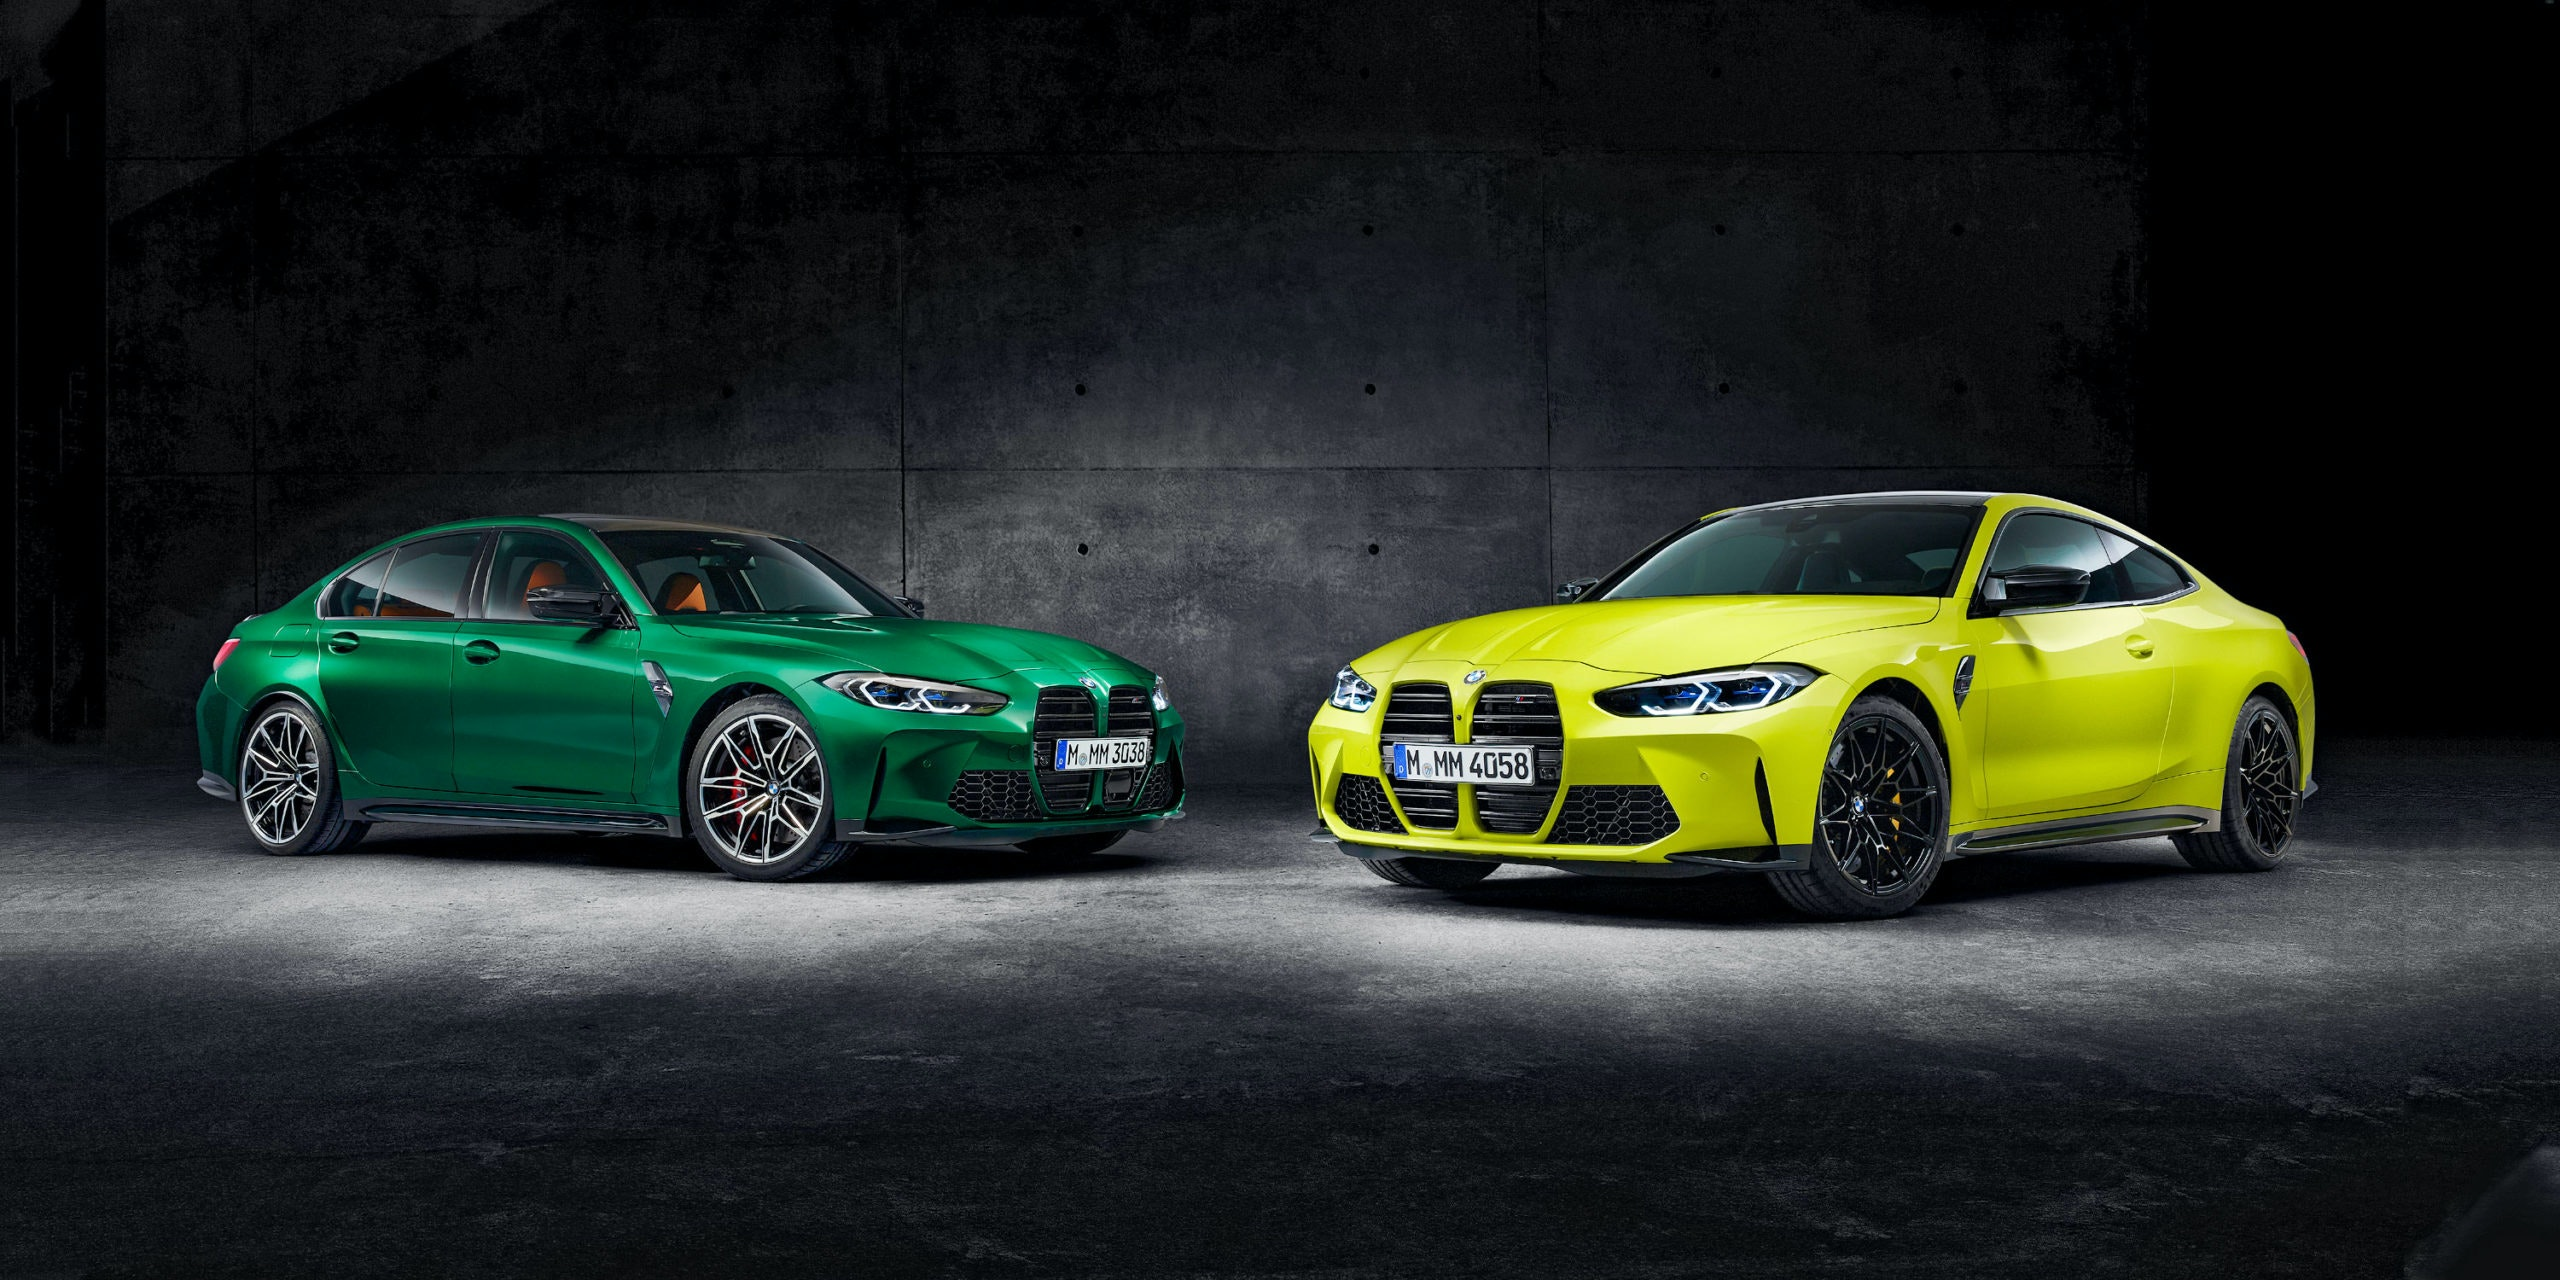 How To Buy The New Bmw M3 And M4 Prices Specs Options And Extras Carwow